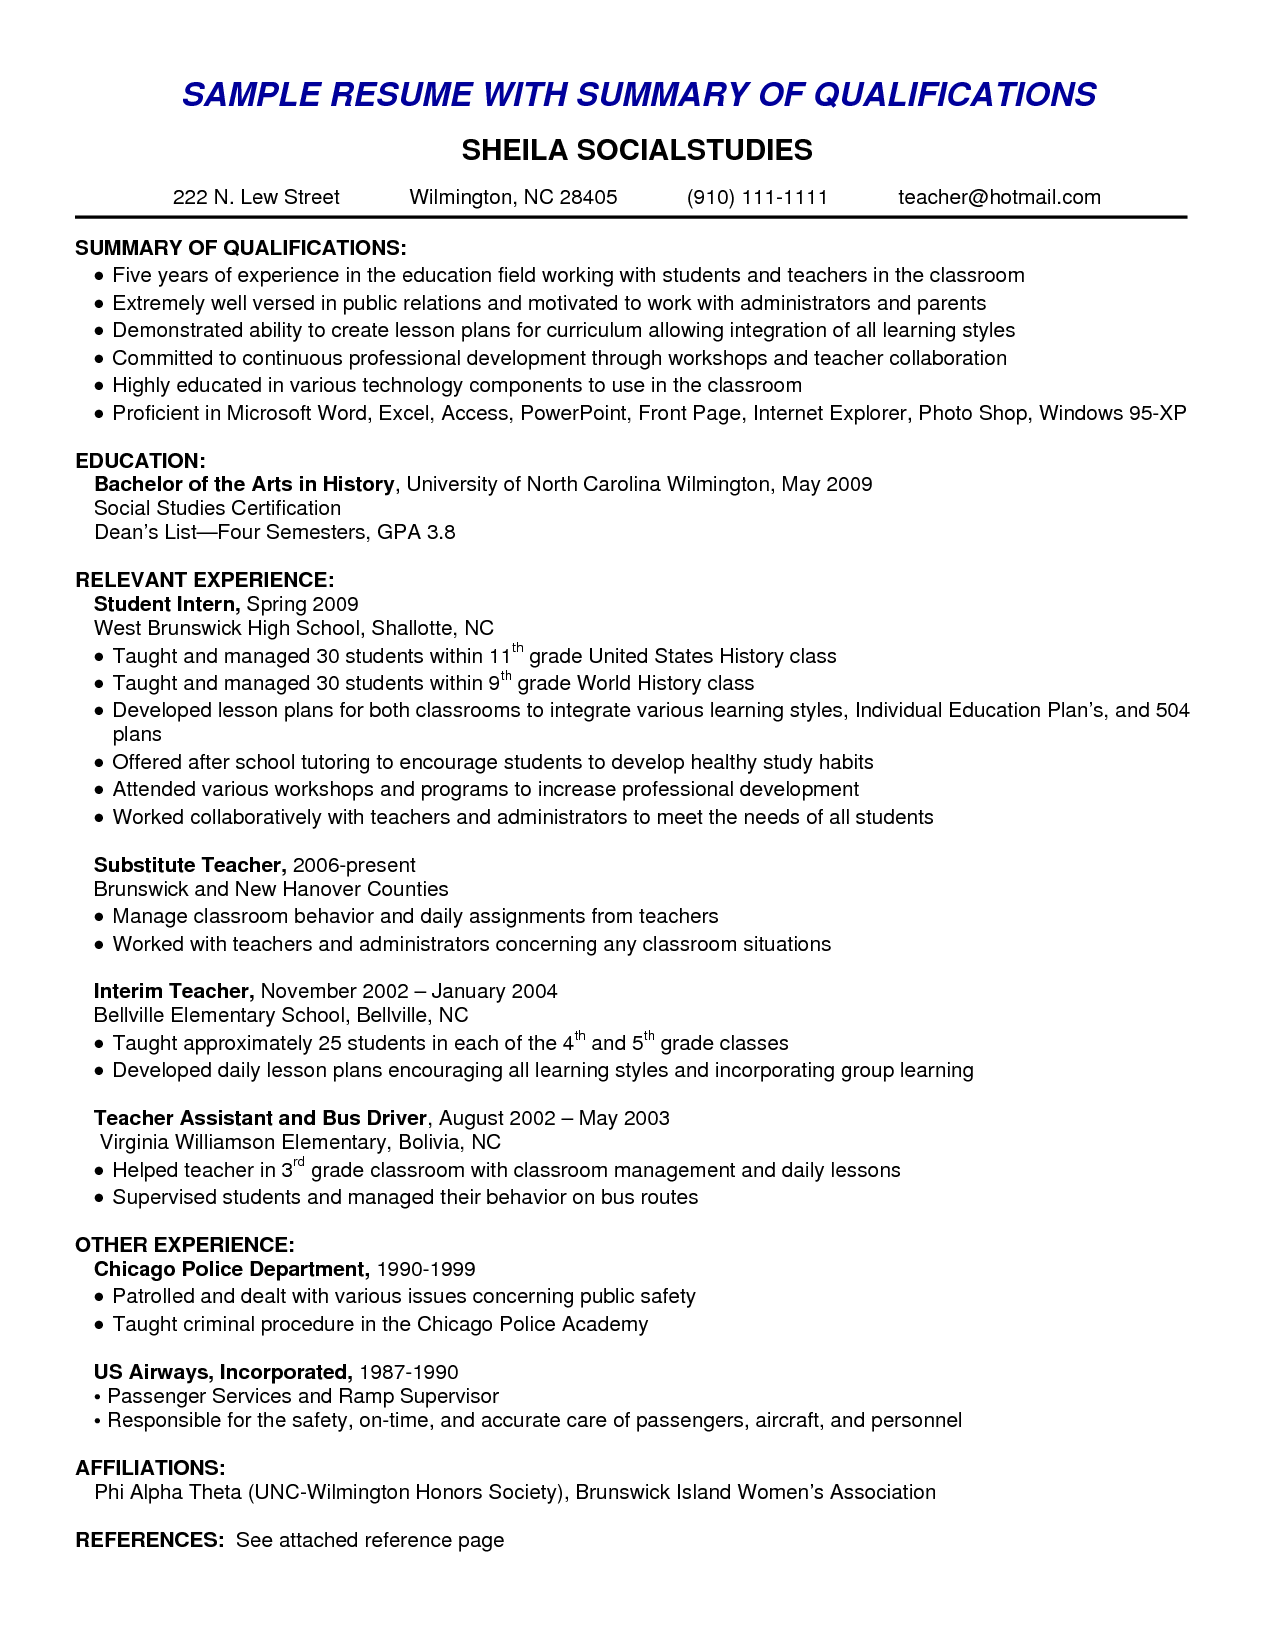 resume skills summary examples example of skills summary for resume amusing summary of skills - Examples Of Summary For Resume